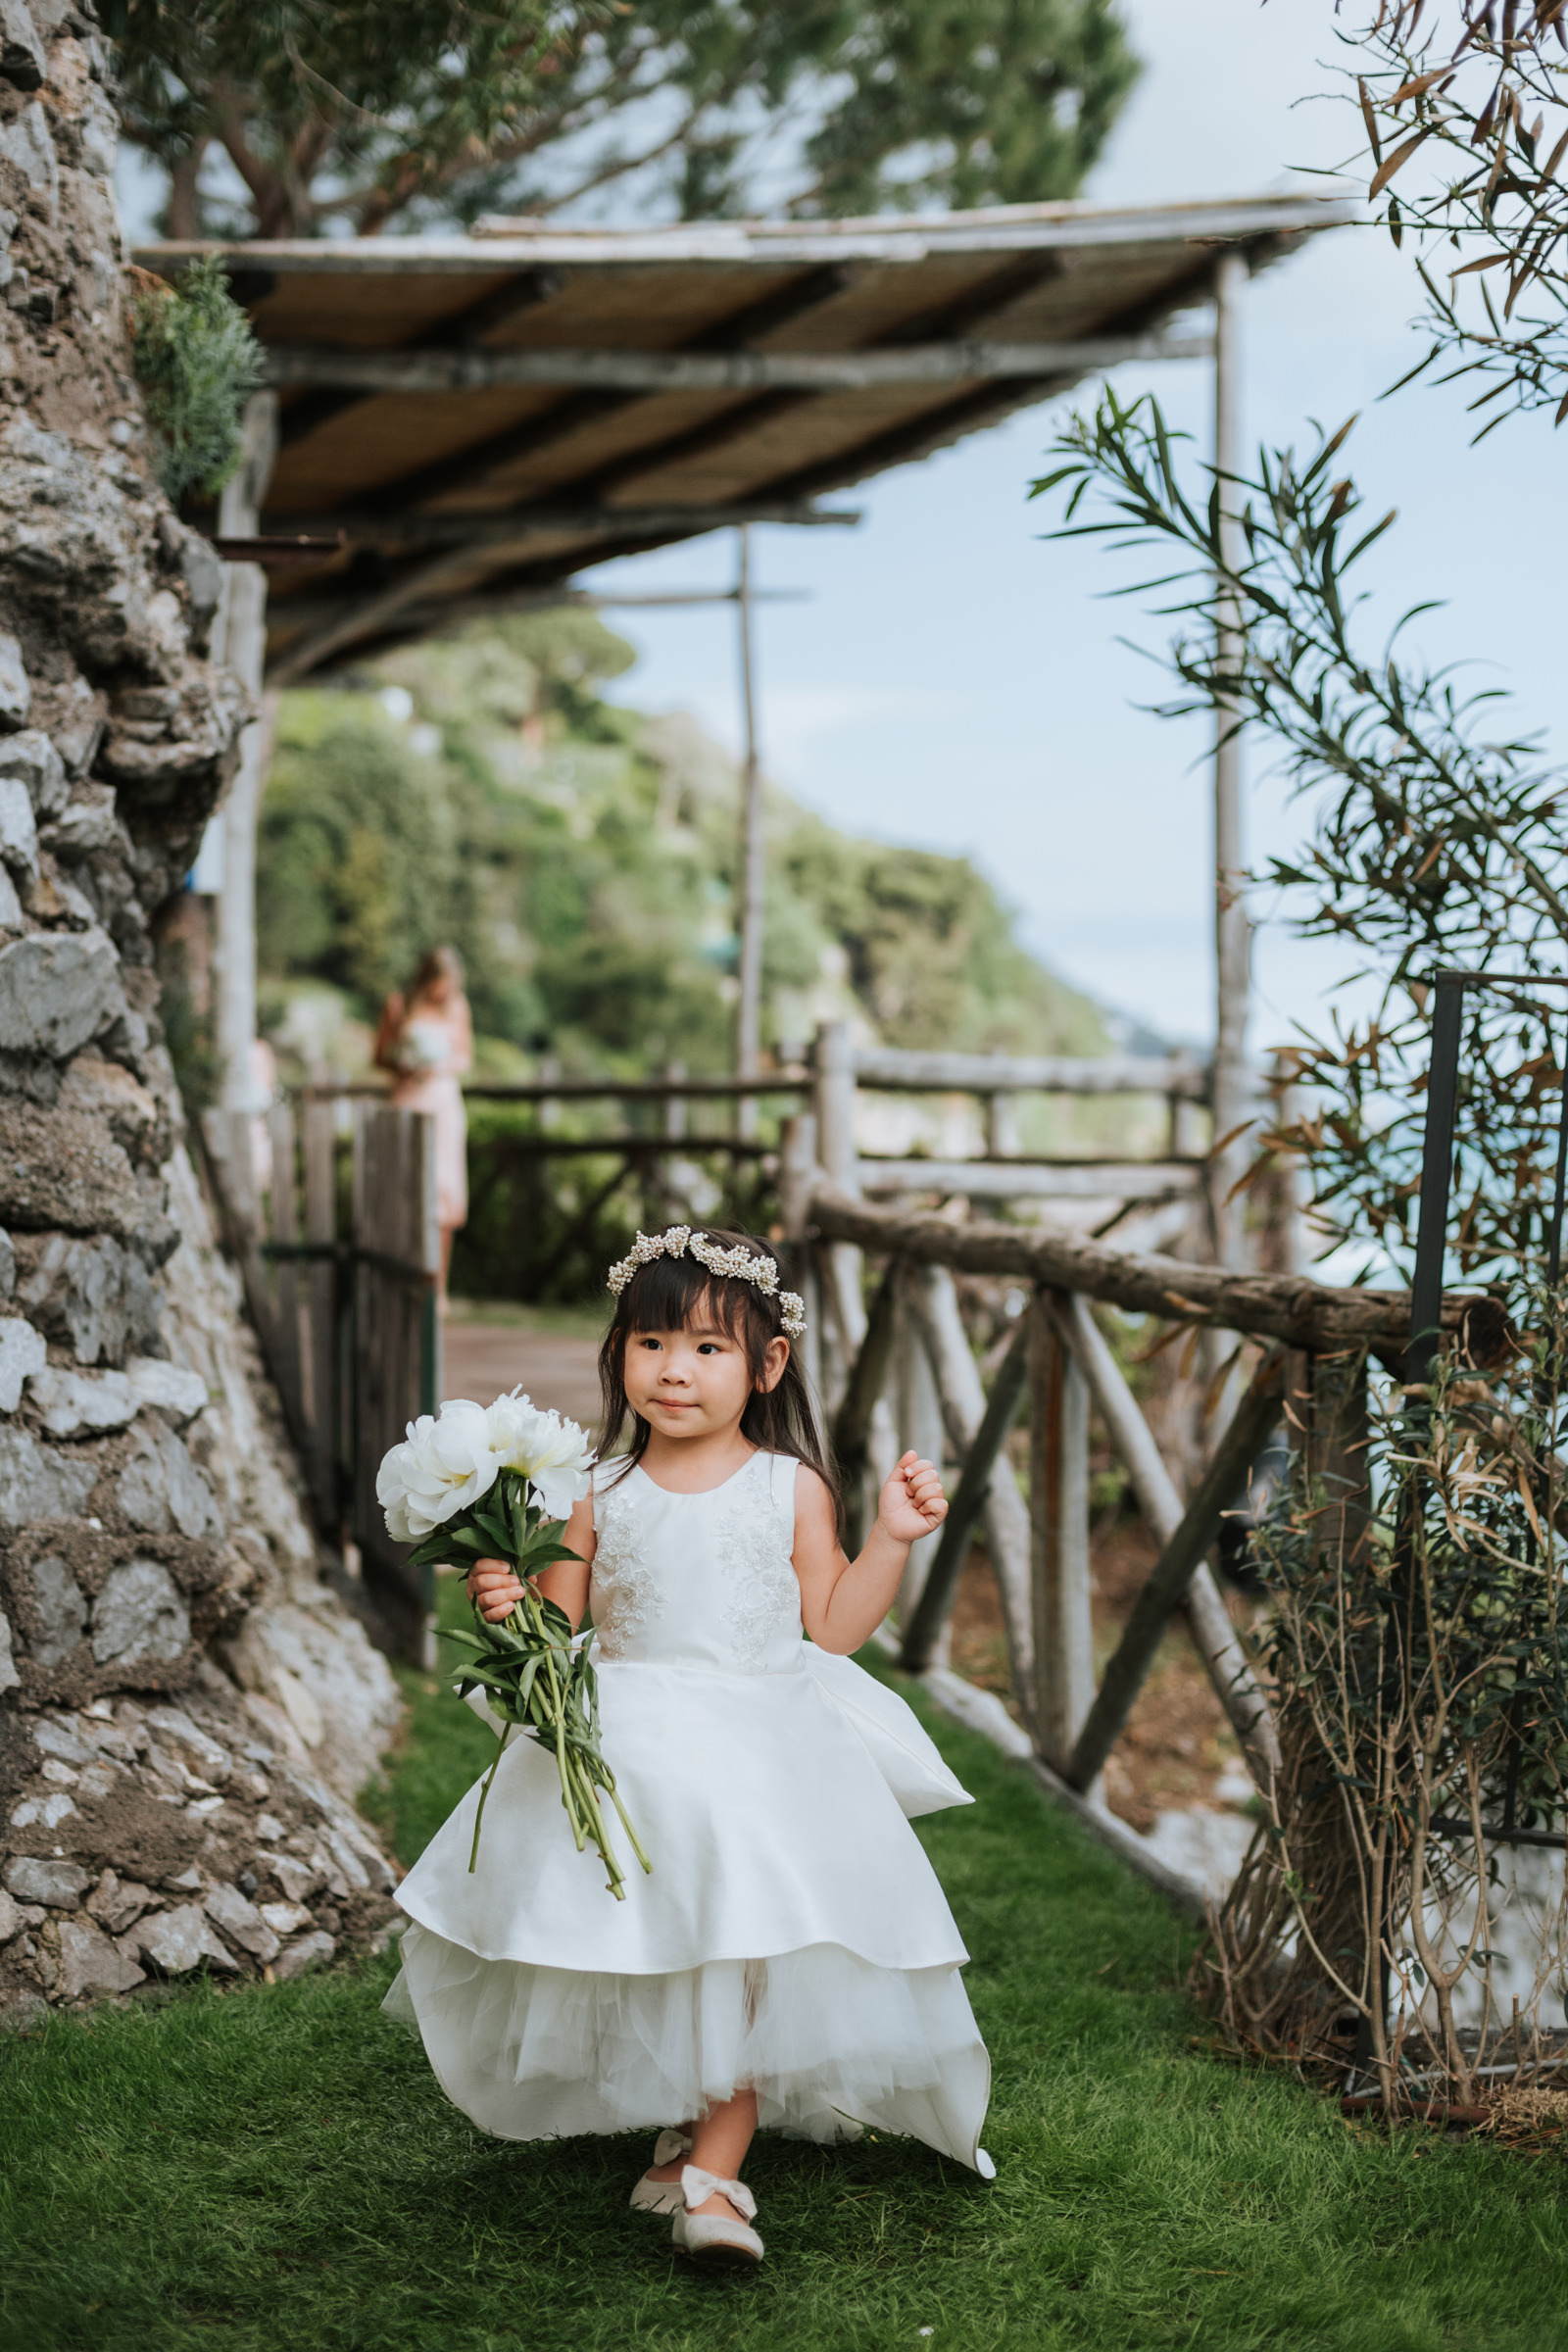 Small flower girl walking with large bouquet - photo by Mun Keat Studio